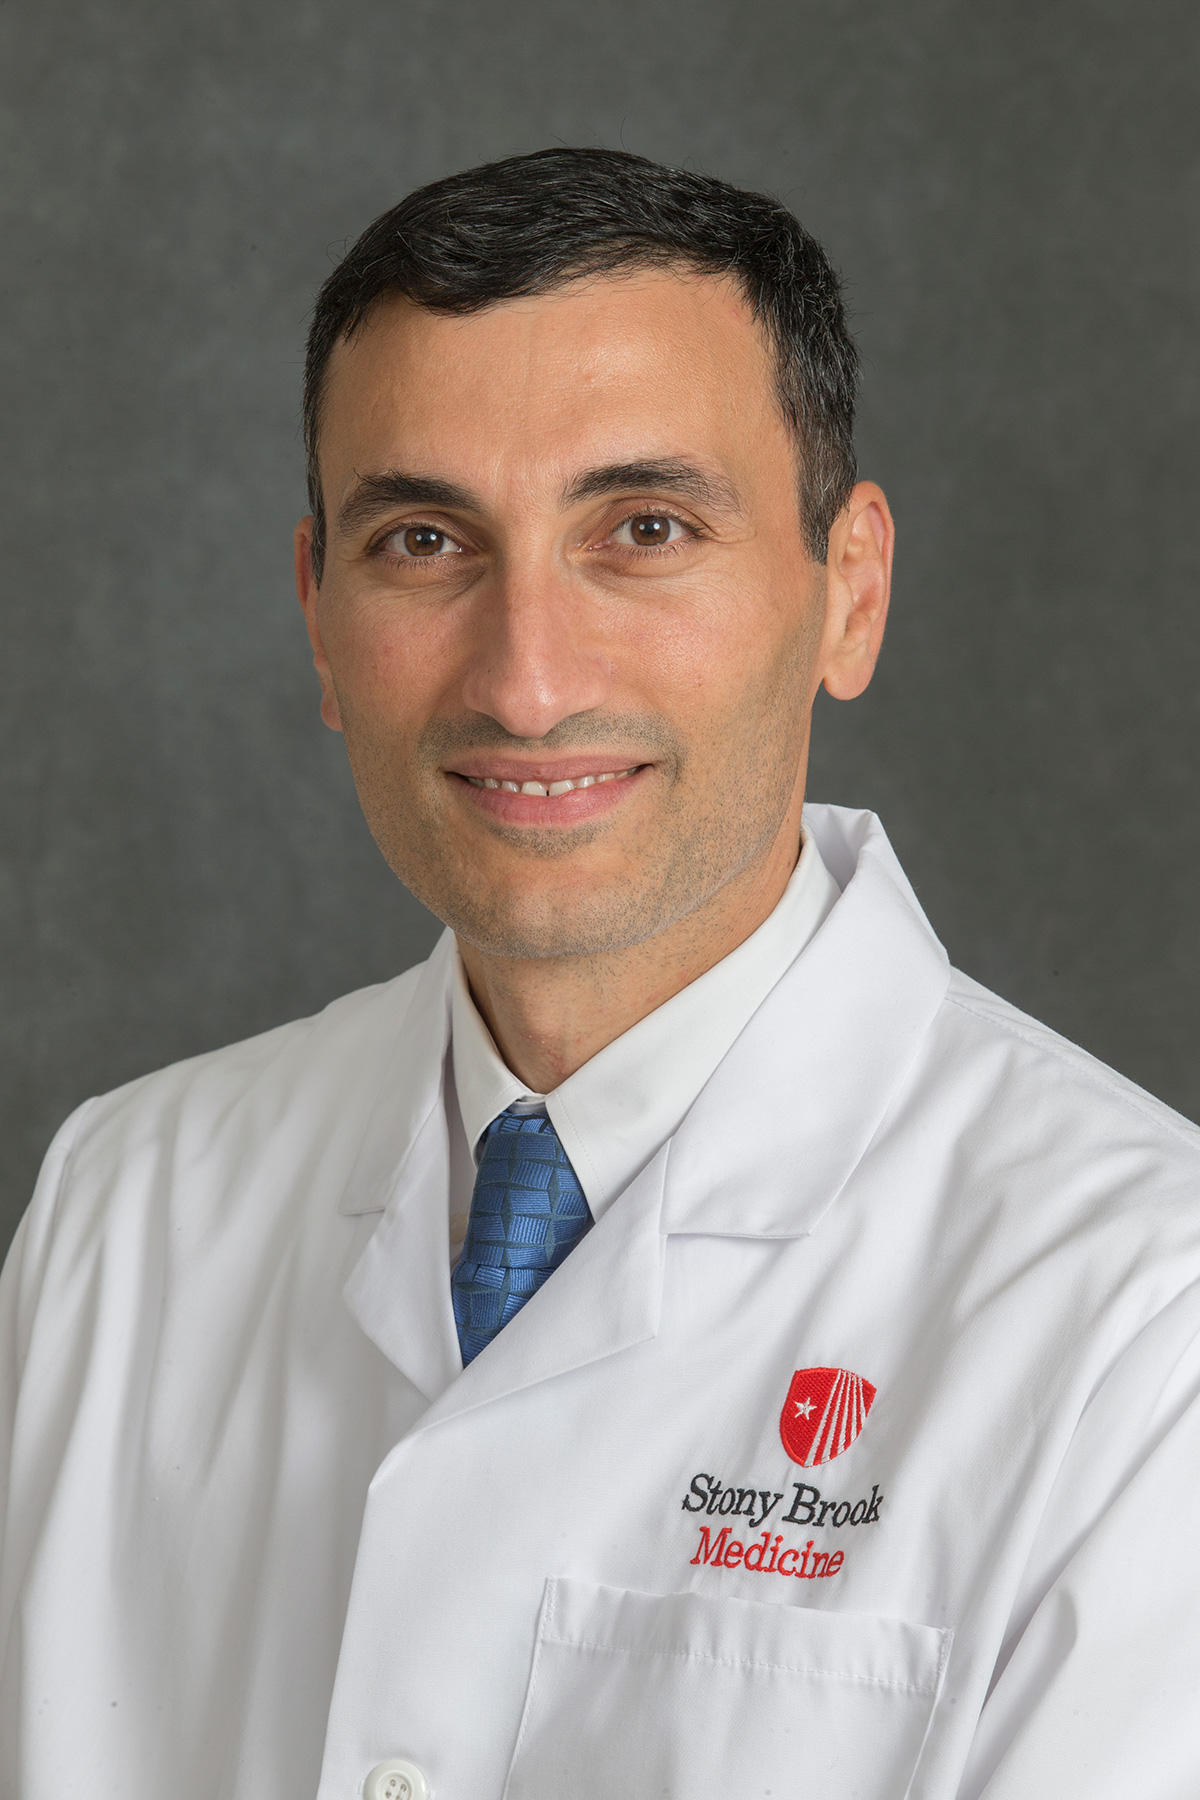 Henry J. Tannous, MD, Clinical Associate Professor of Surgery in the Division of Cardiothoracic Surgery in the Department of Surgery at Stony Brook University School of Medicine